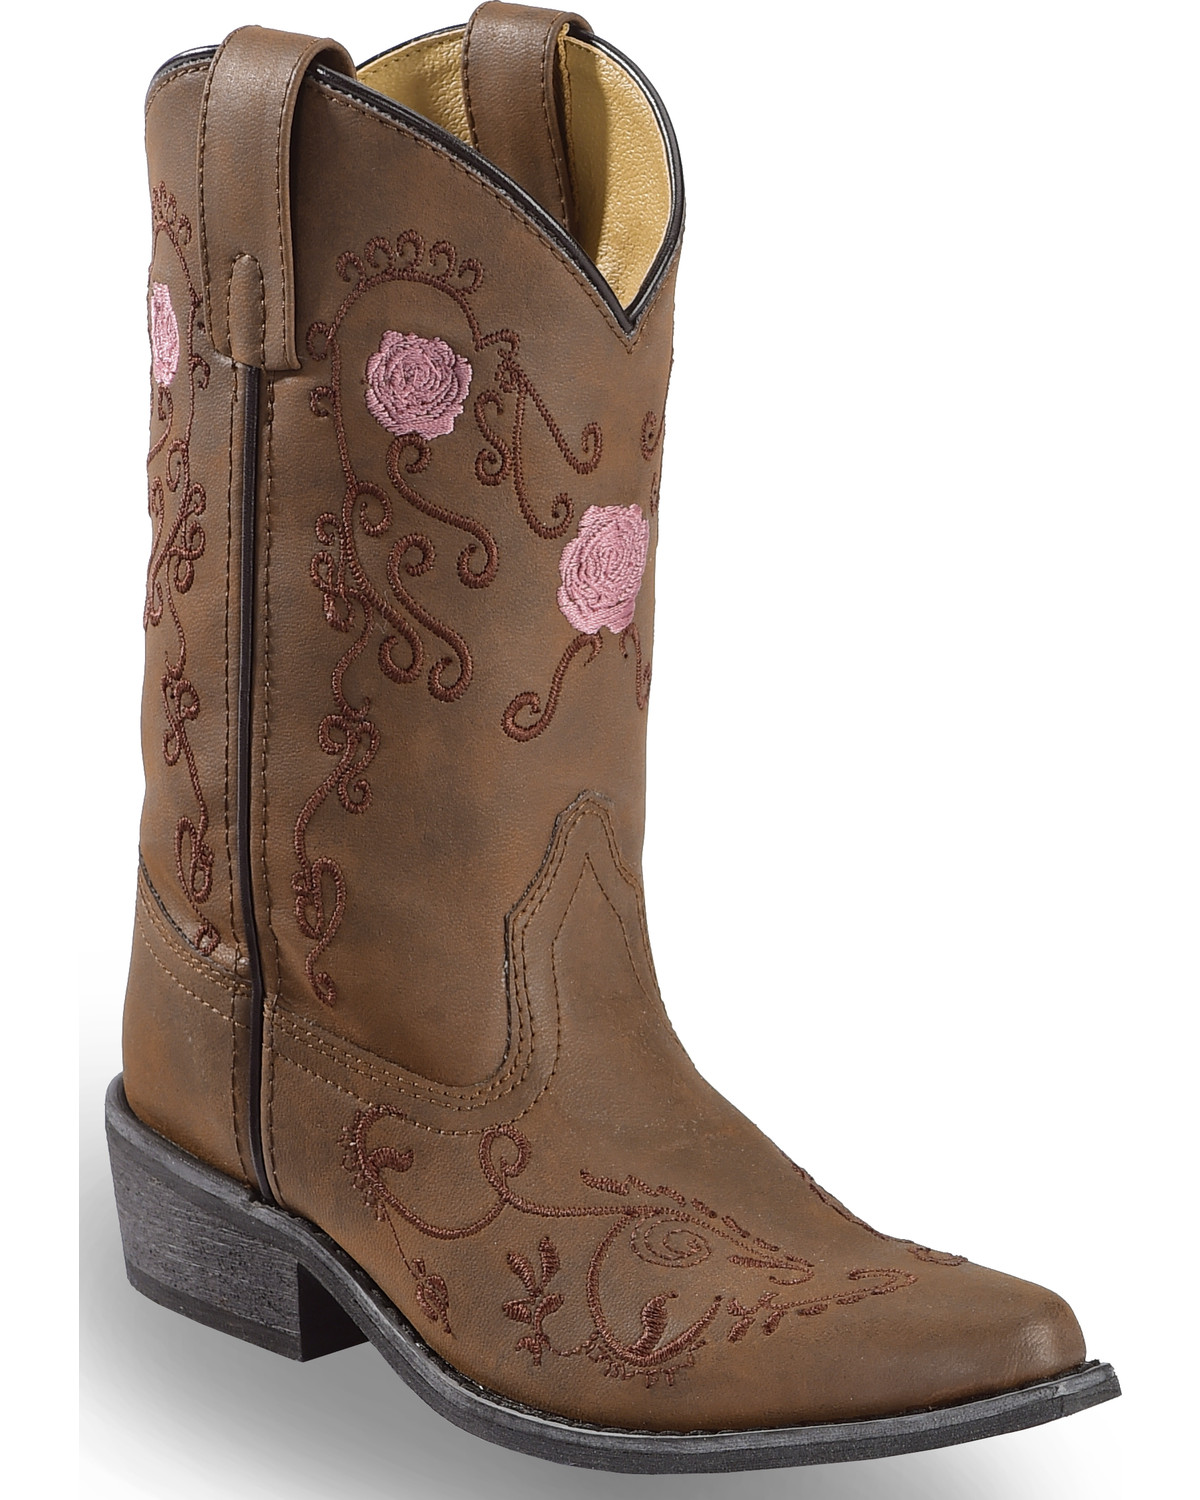 d153afd5f0 Zoomed Image Shyanne Girls' Floral Embroidered Western Boots - Pointed Toe,  Brown, ...